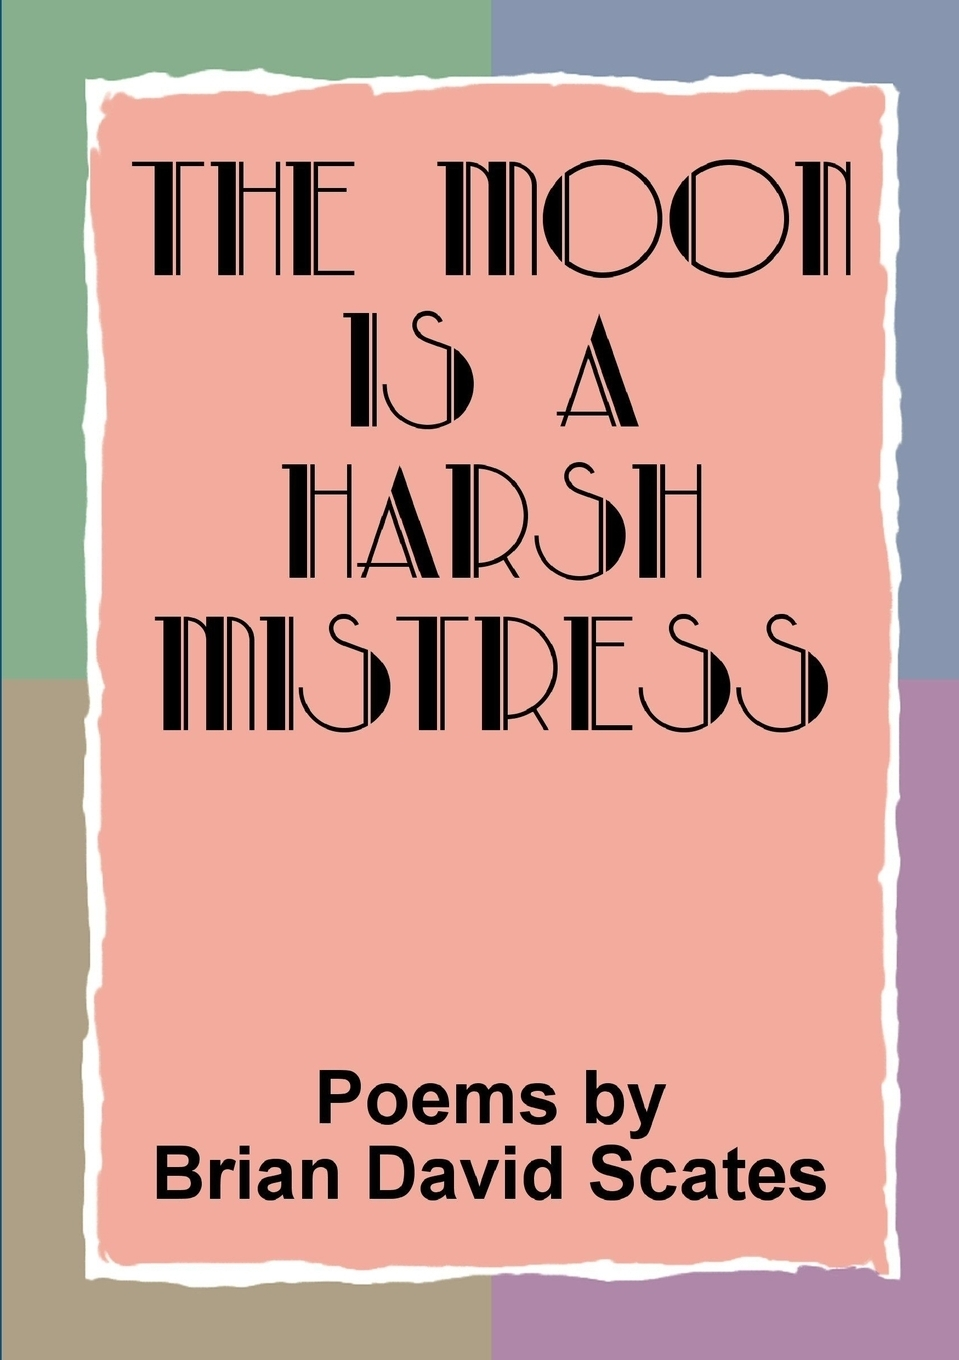 Brian David Scates. The Moon is a Harsh Mistress